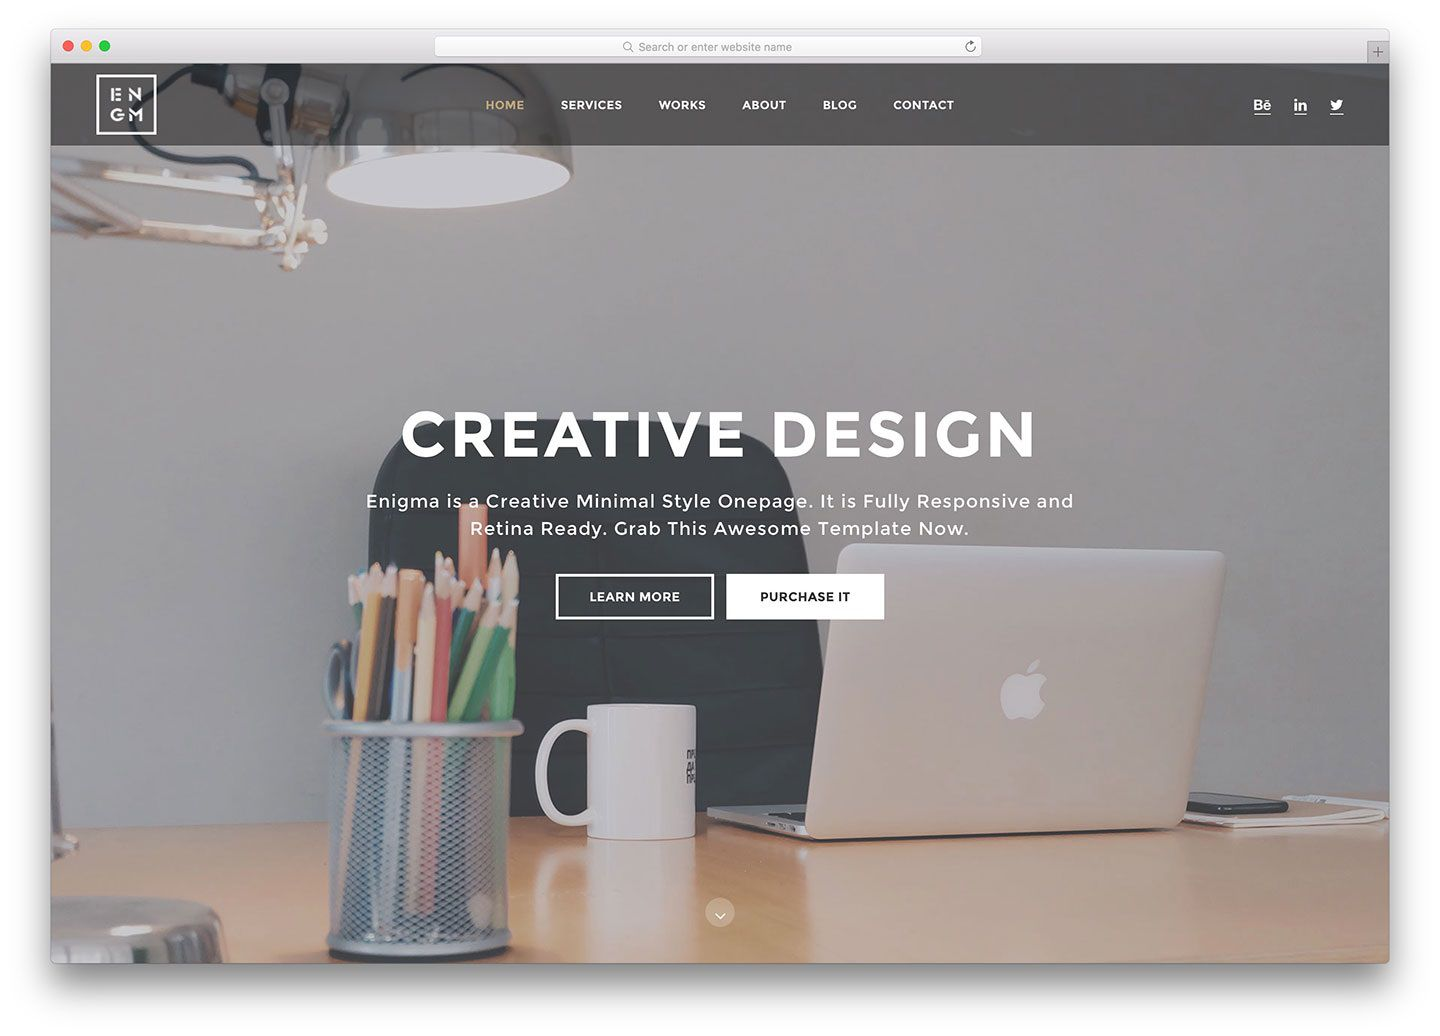 007 Archaicawful Product Website Template Html Free Download High Definition  With CsFull